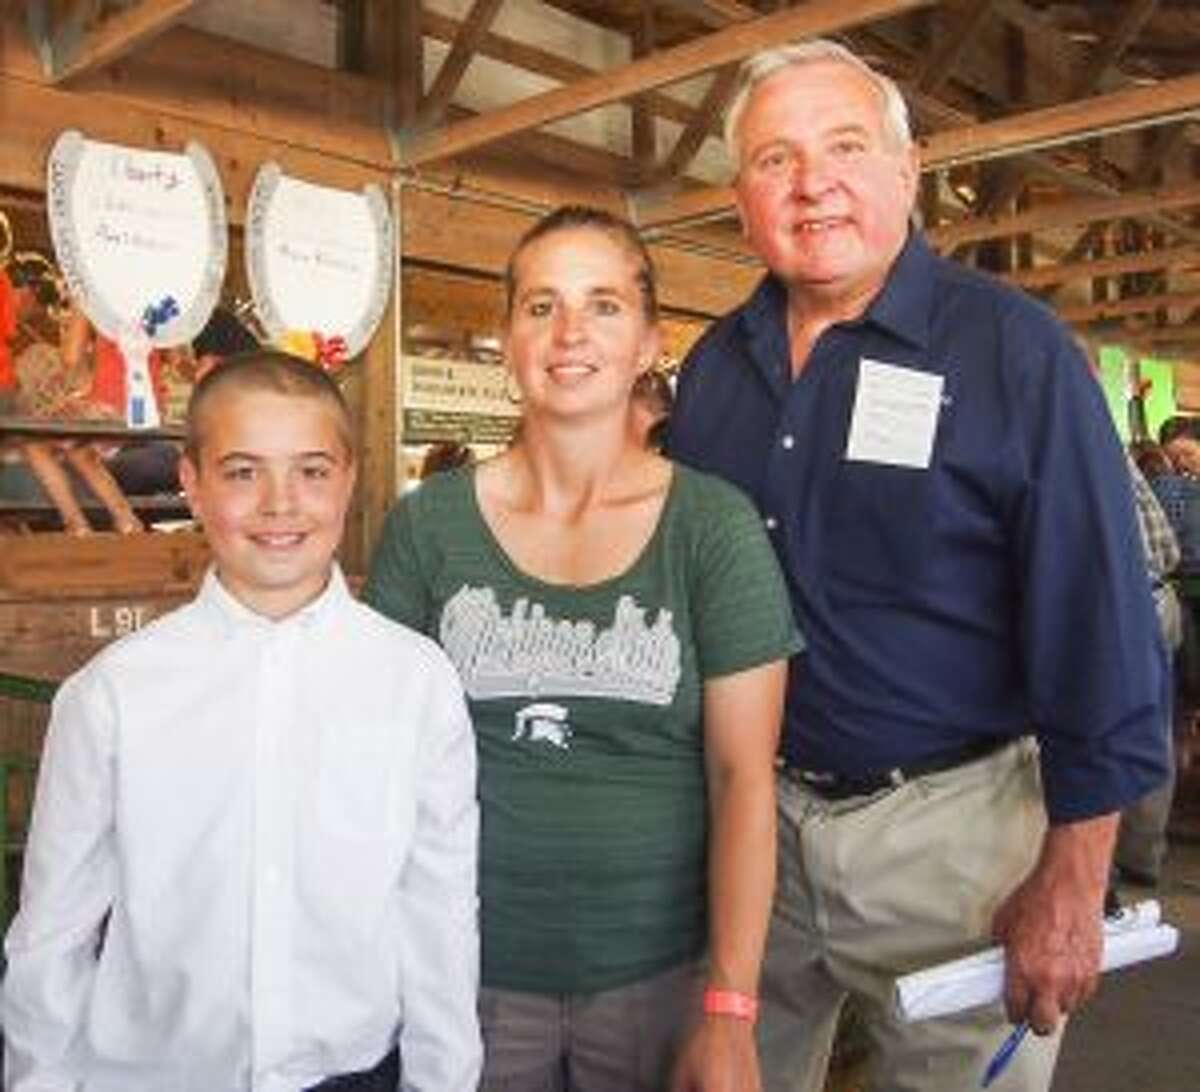 Franz was the winning bidder for the youngster's three rabbits, just as he was the winning bidder 25 years ago for Christina's rabbits when she was in 4-H.